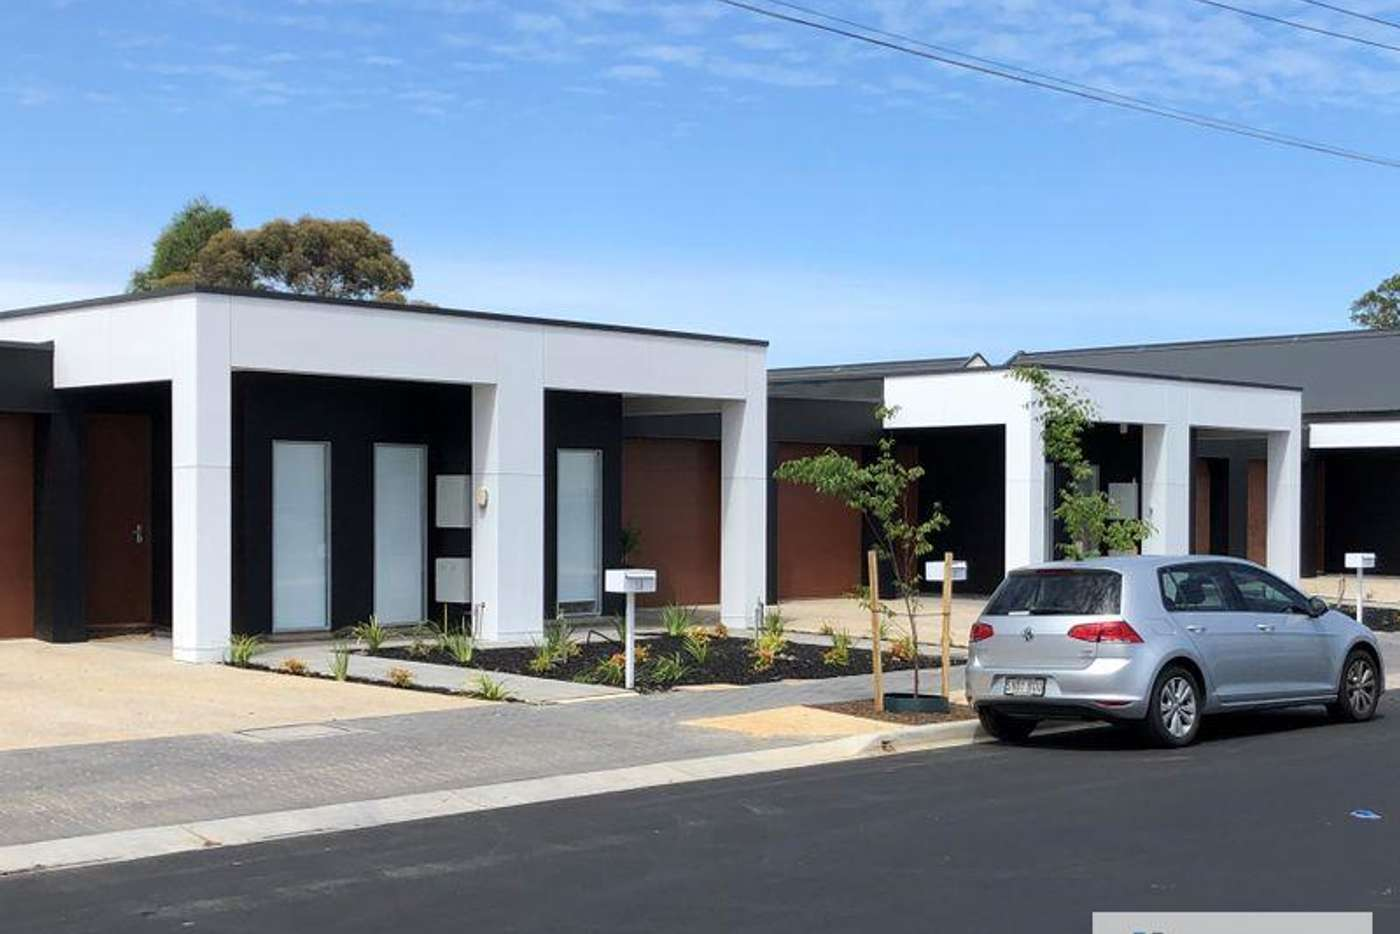 Main view of Homely villa listing, 3 Norma Street, Mile End SA 5031